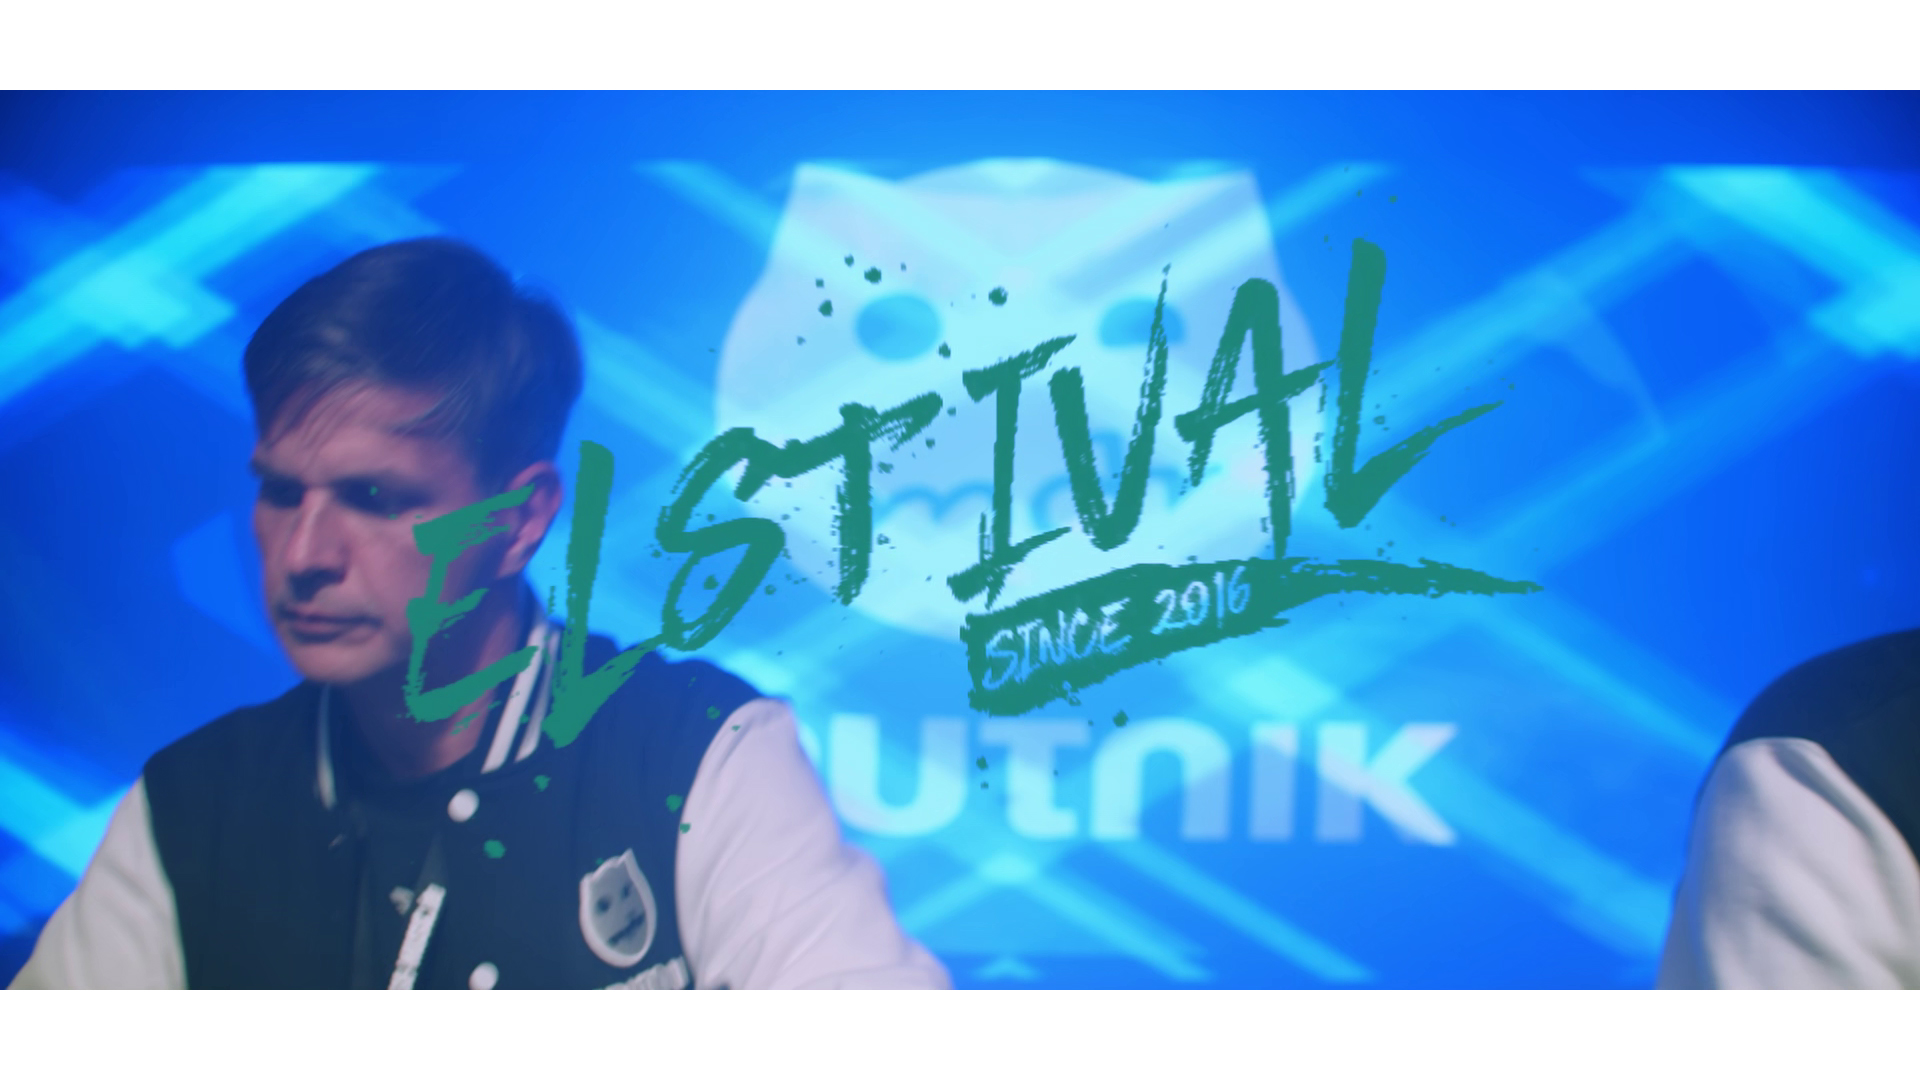 Aftermovie - Elstival Sputnik Heimattour in Lochau 2019